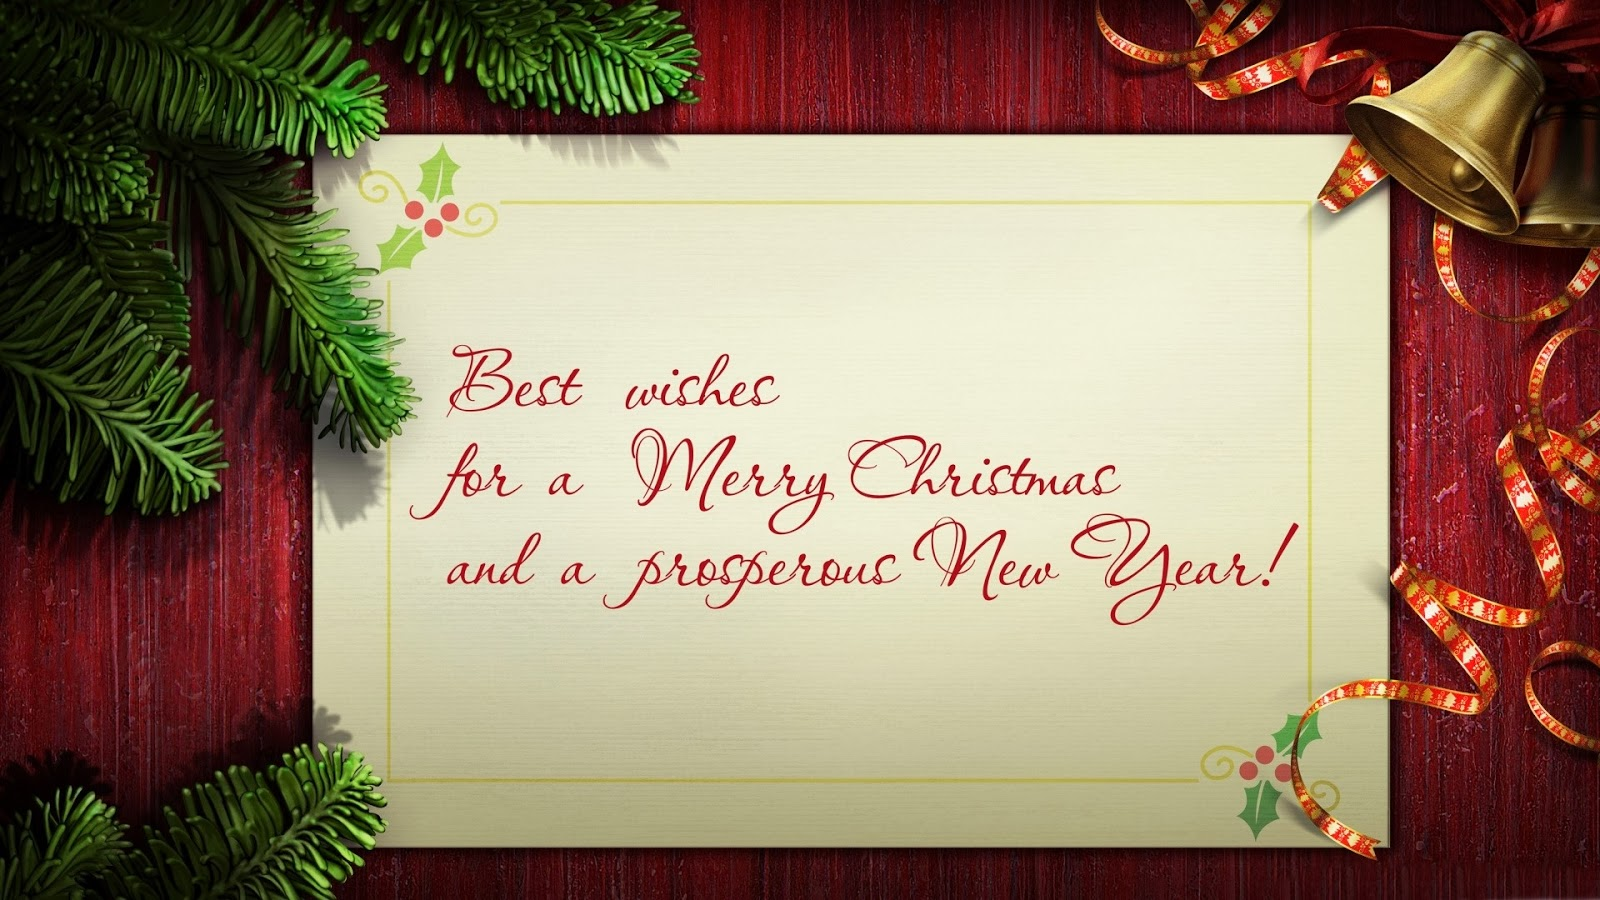 Christmas Greeting Card Messages HD Wallpapers - HD wallpapers